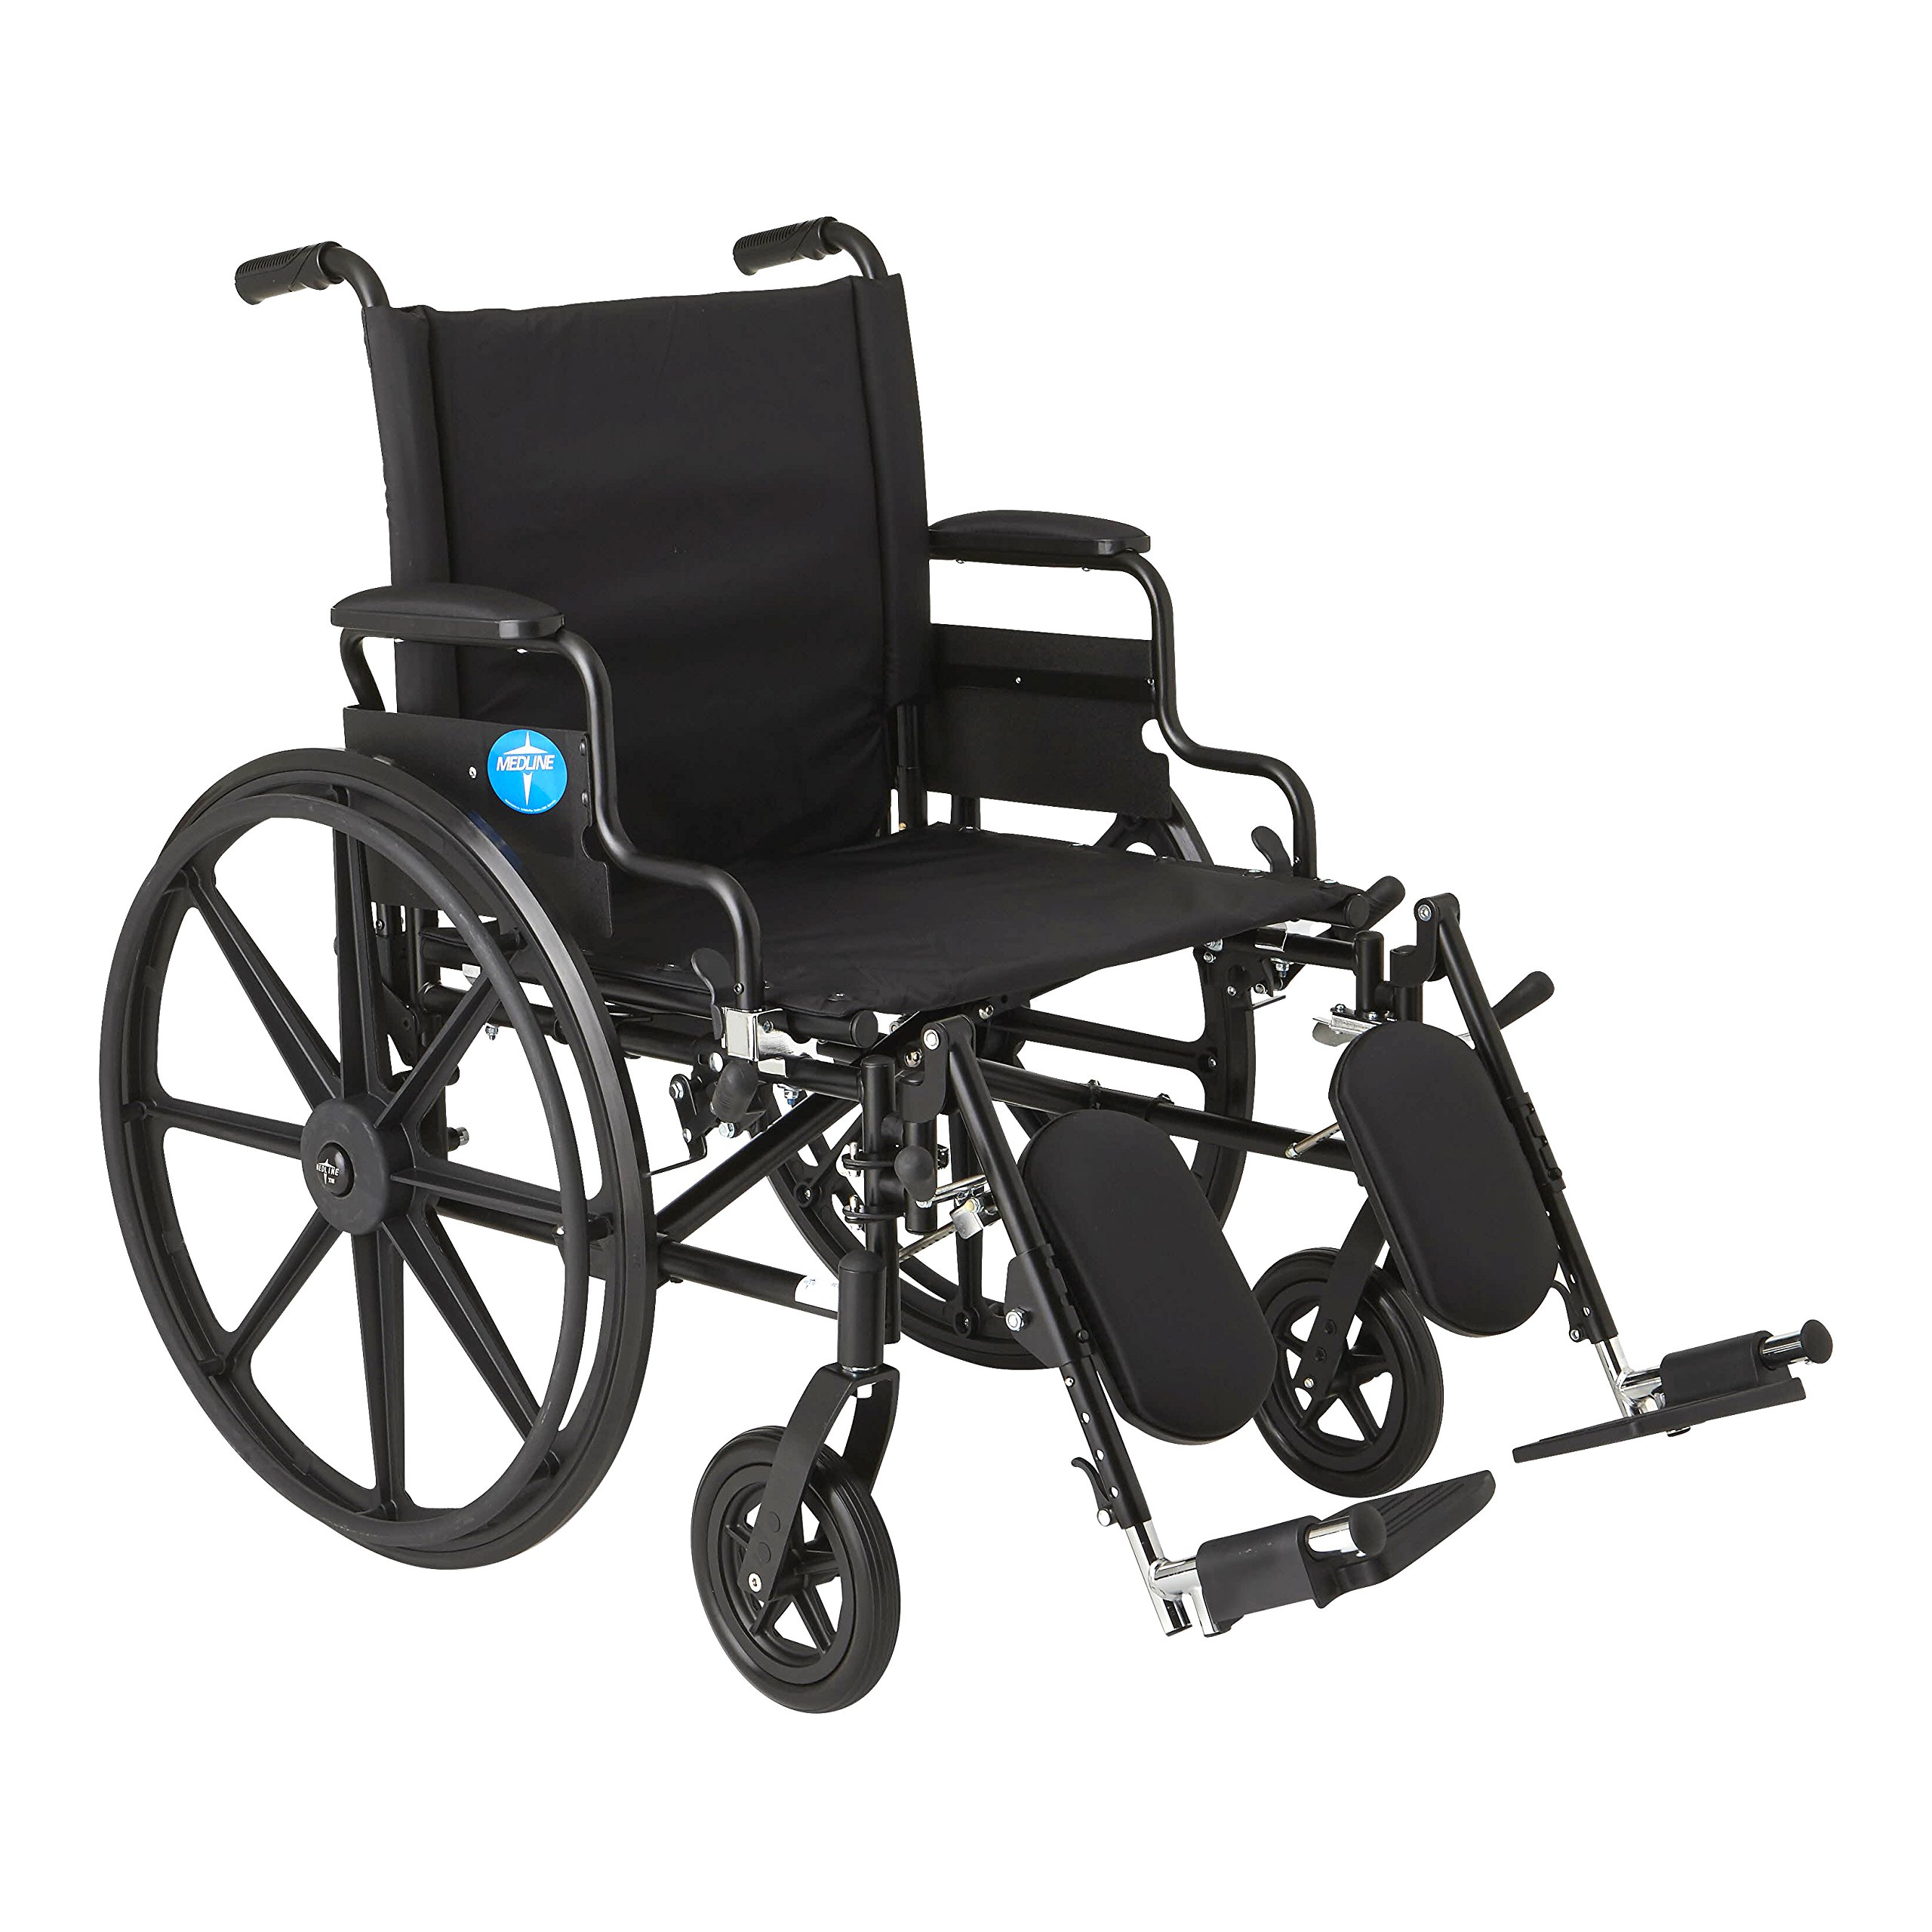 """Medline Premium Ultra-lightweight Wheelchair with Flip-Back Desk Arms and Elevating Leg Rests for Extra Comfort, Black, 22"""" x 18'' Seat"""